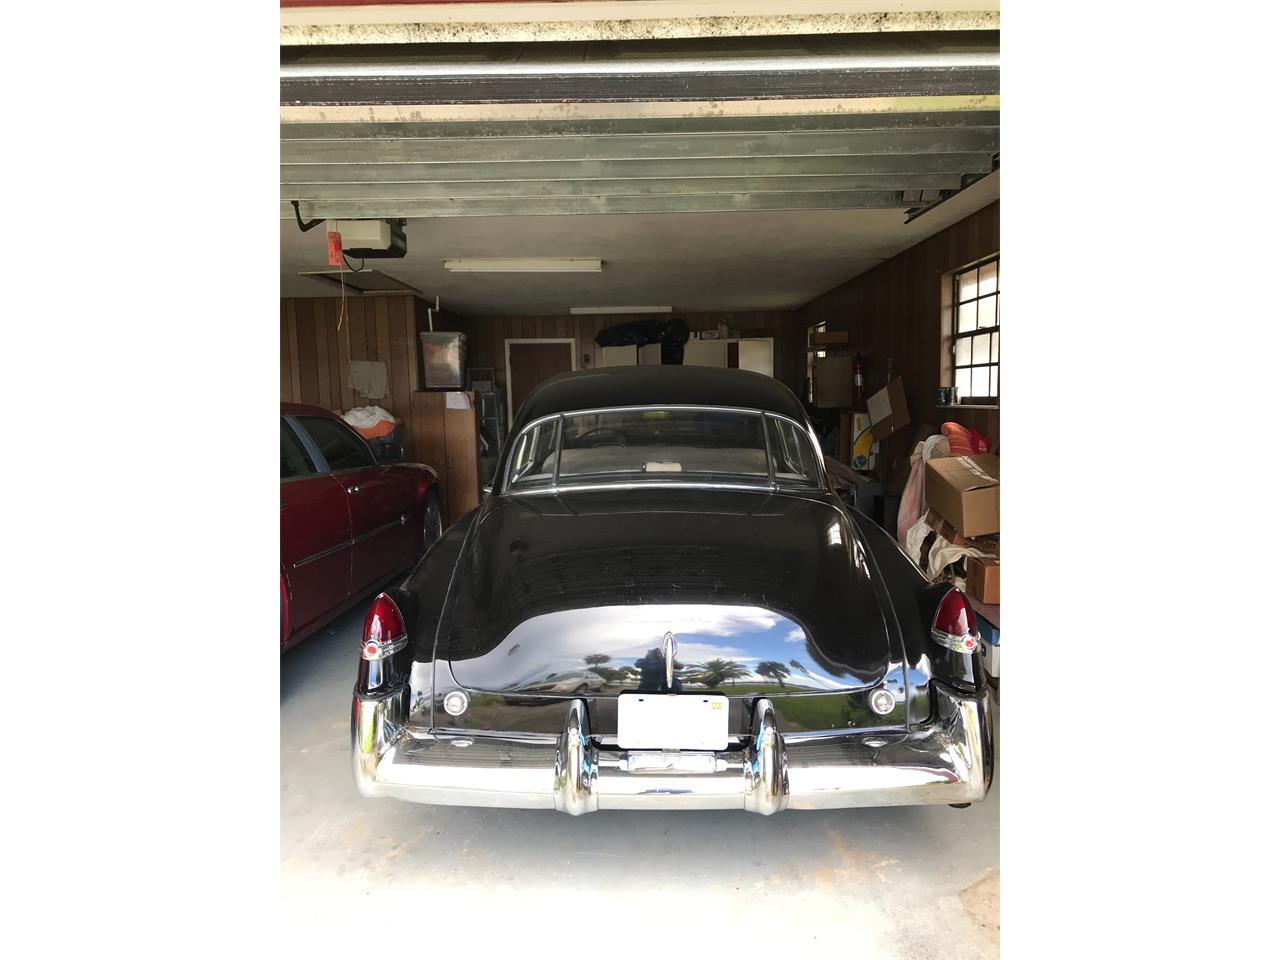 Large Picture of Classic '49 Cadillac 4-Dr Sedan located in Land O Lakes Florida - $17,500.00 - QAJD